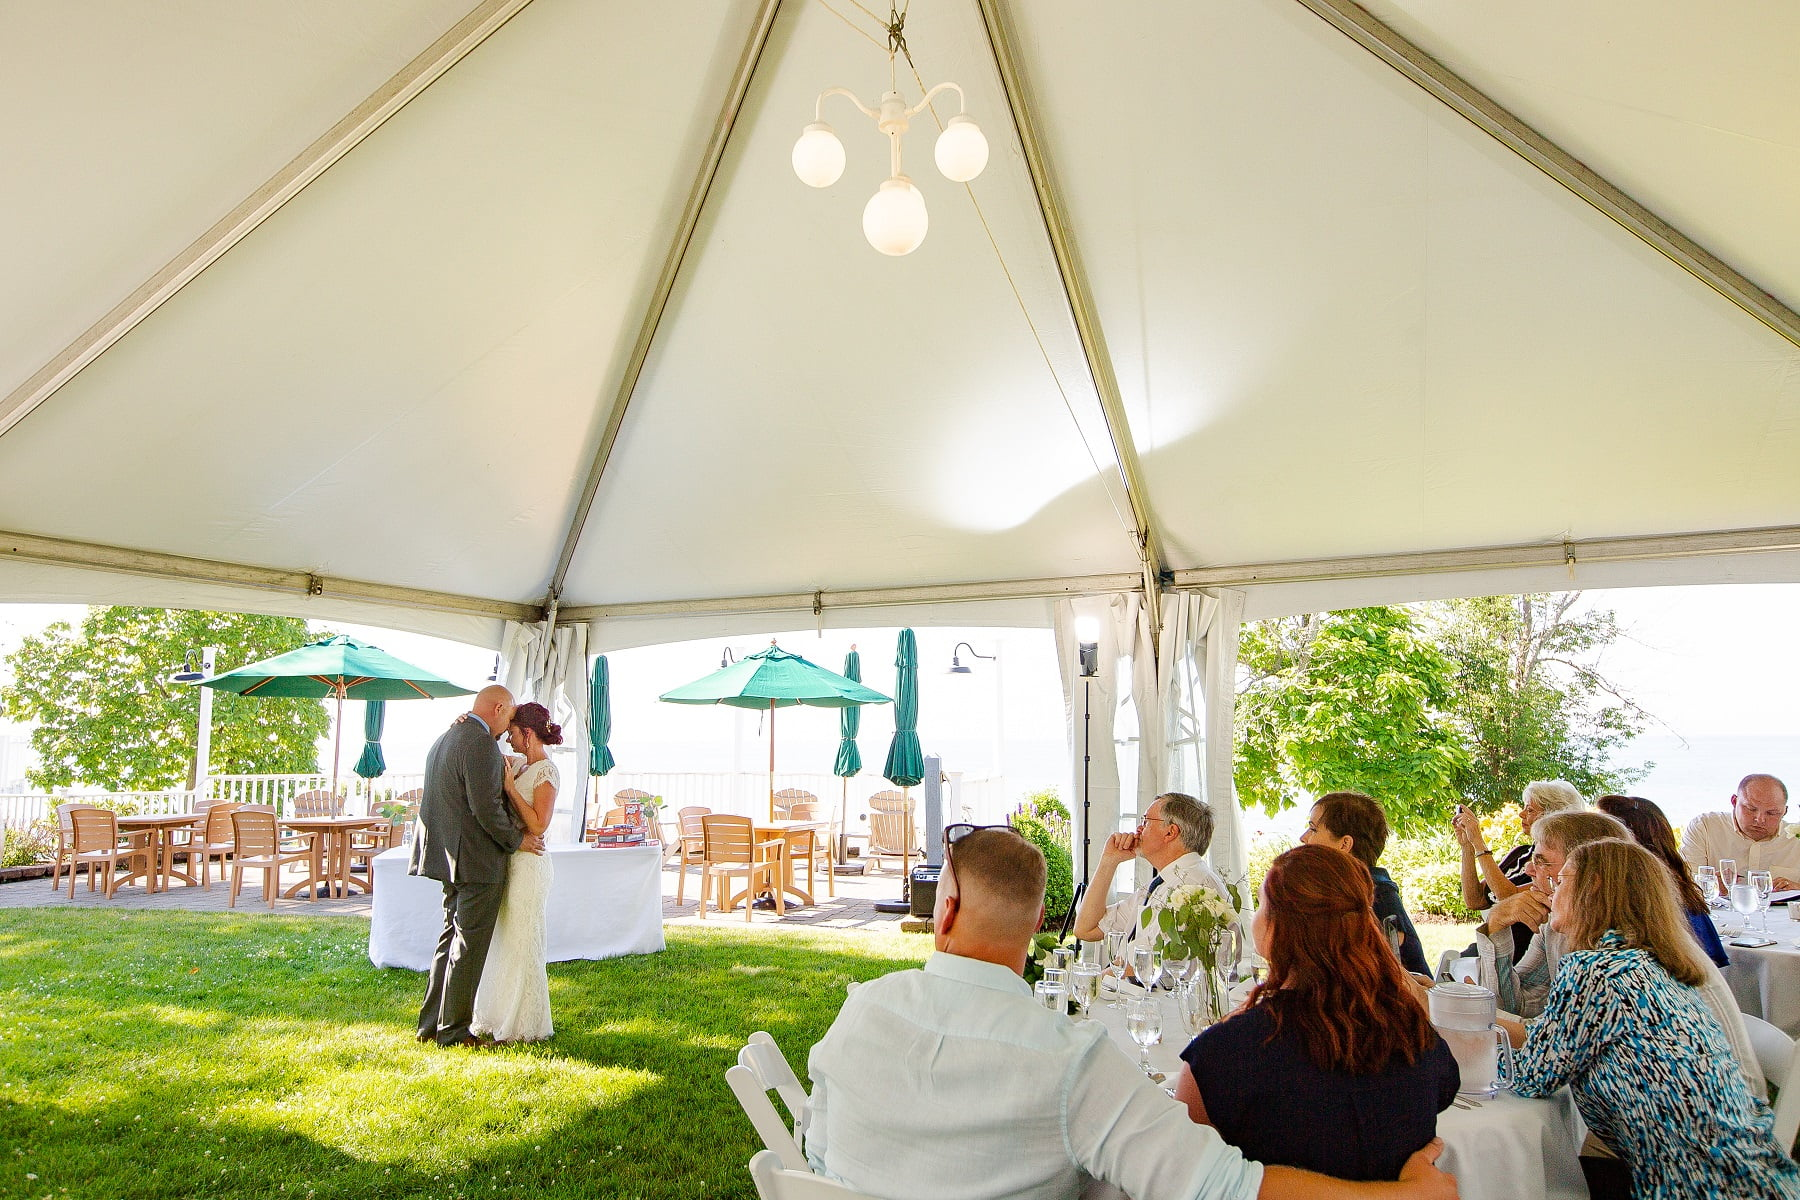 The Lakehouse Inn wedding